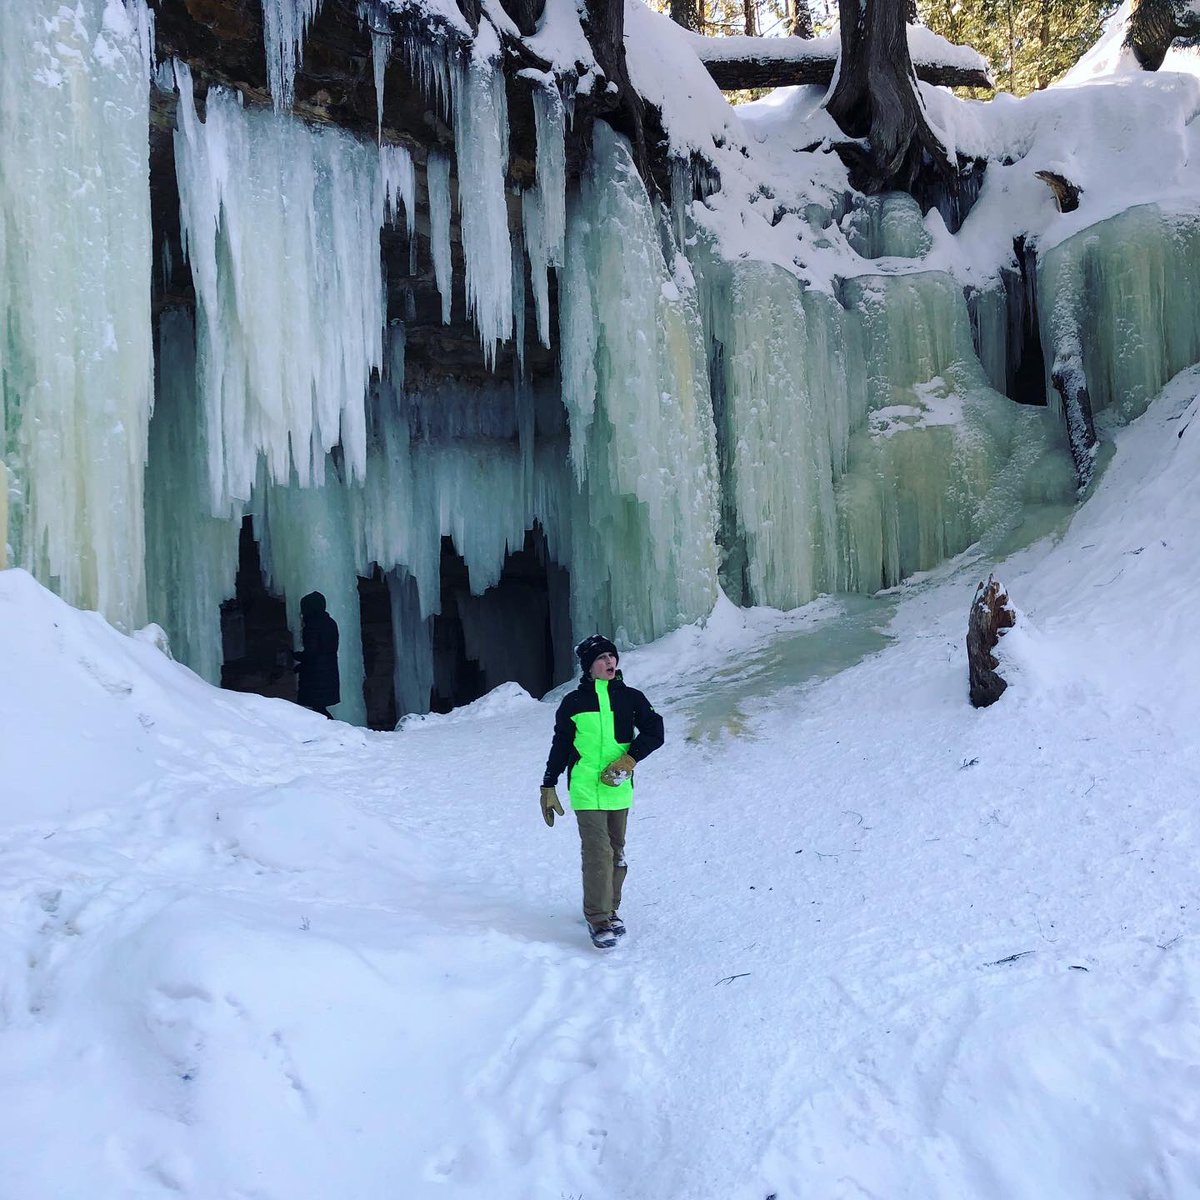 @SKingPES Thank you, Scott! Truly blessed to live in Michigan for all its beauty! #icecaves